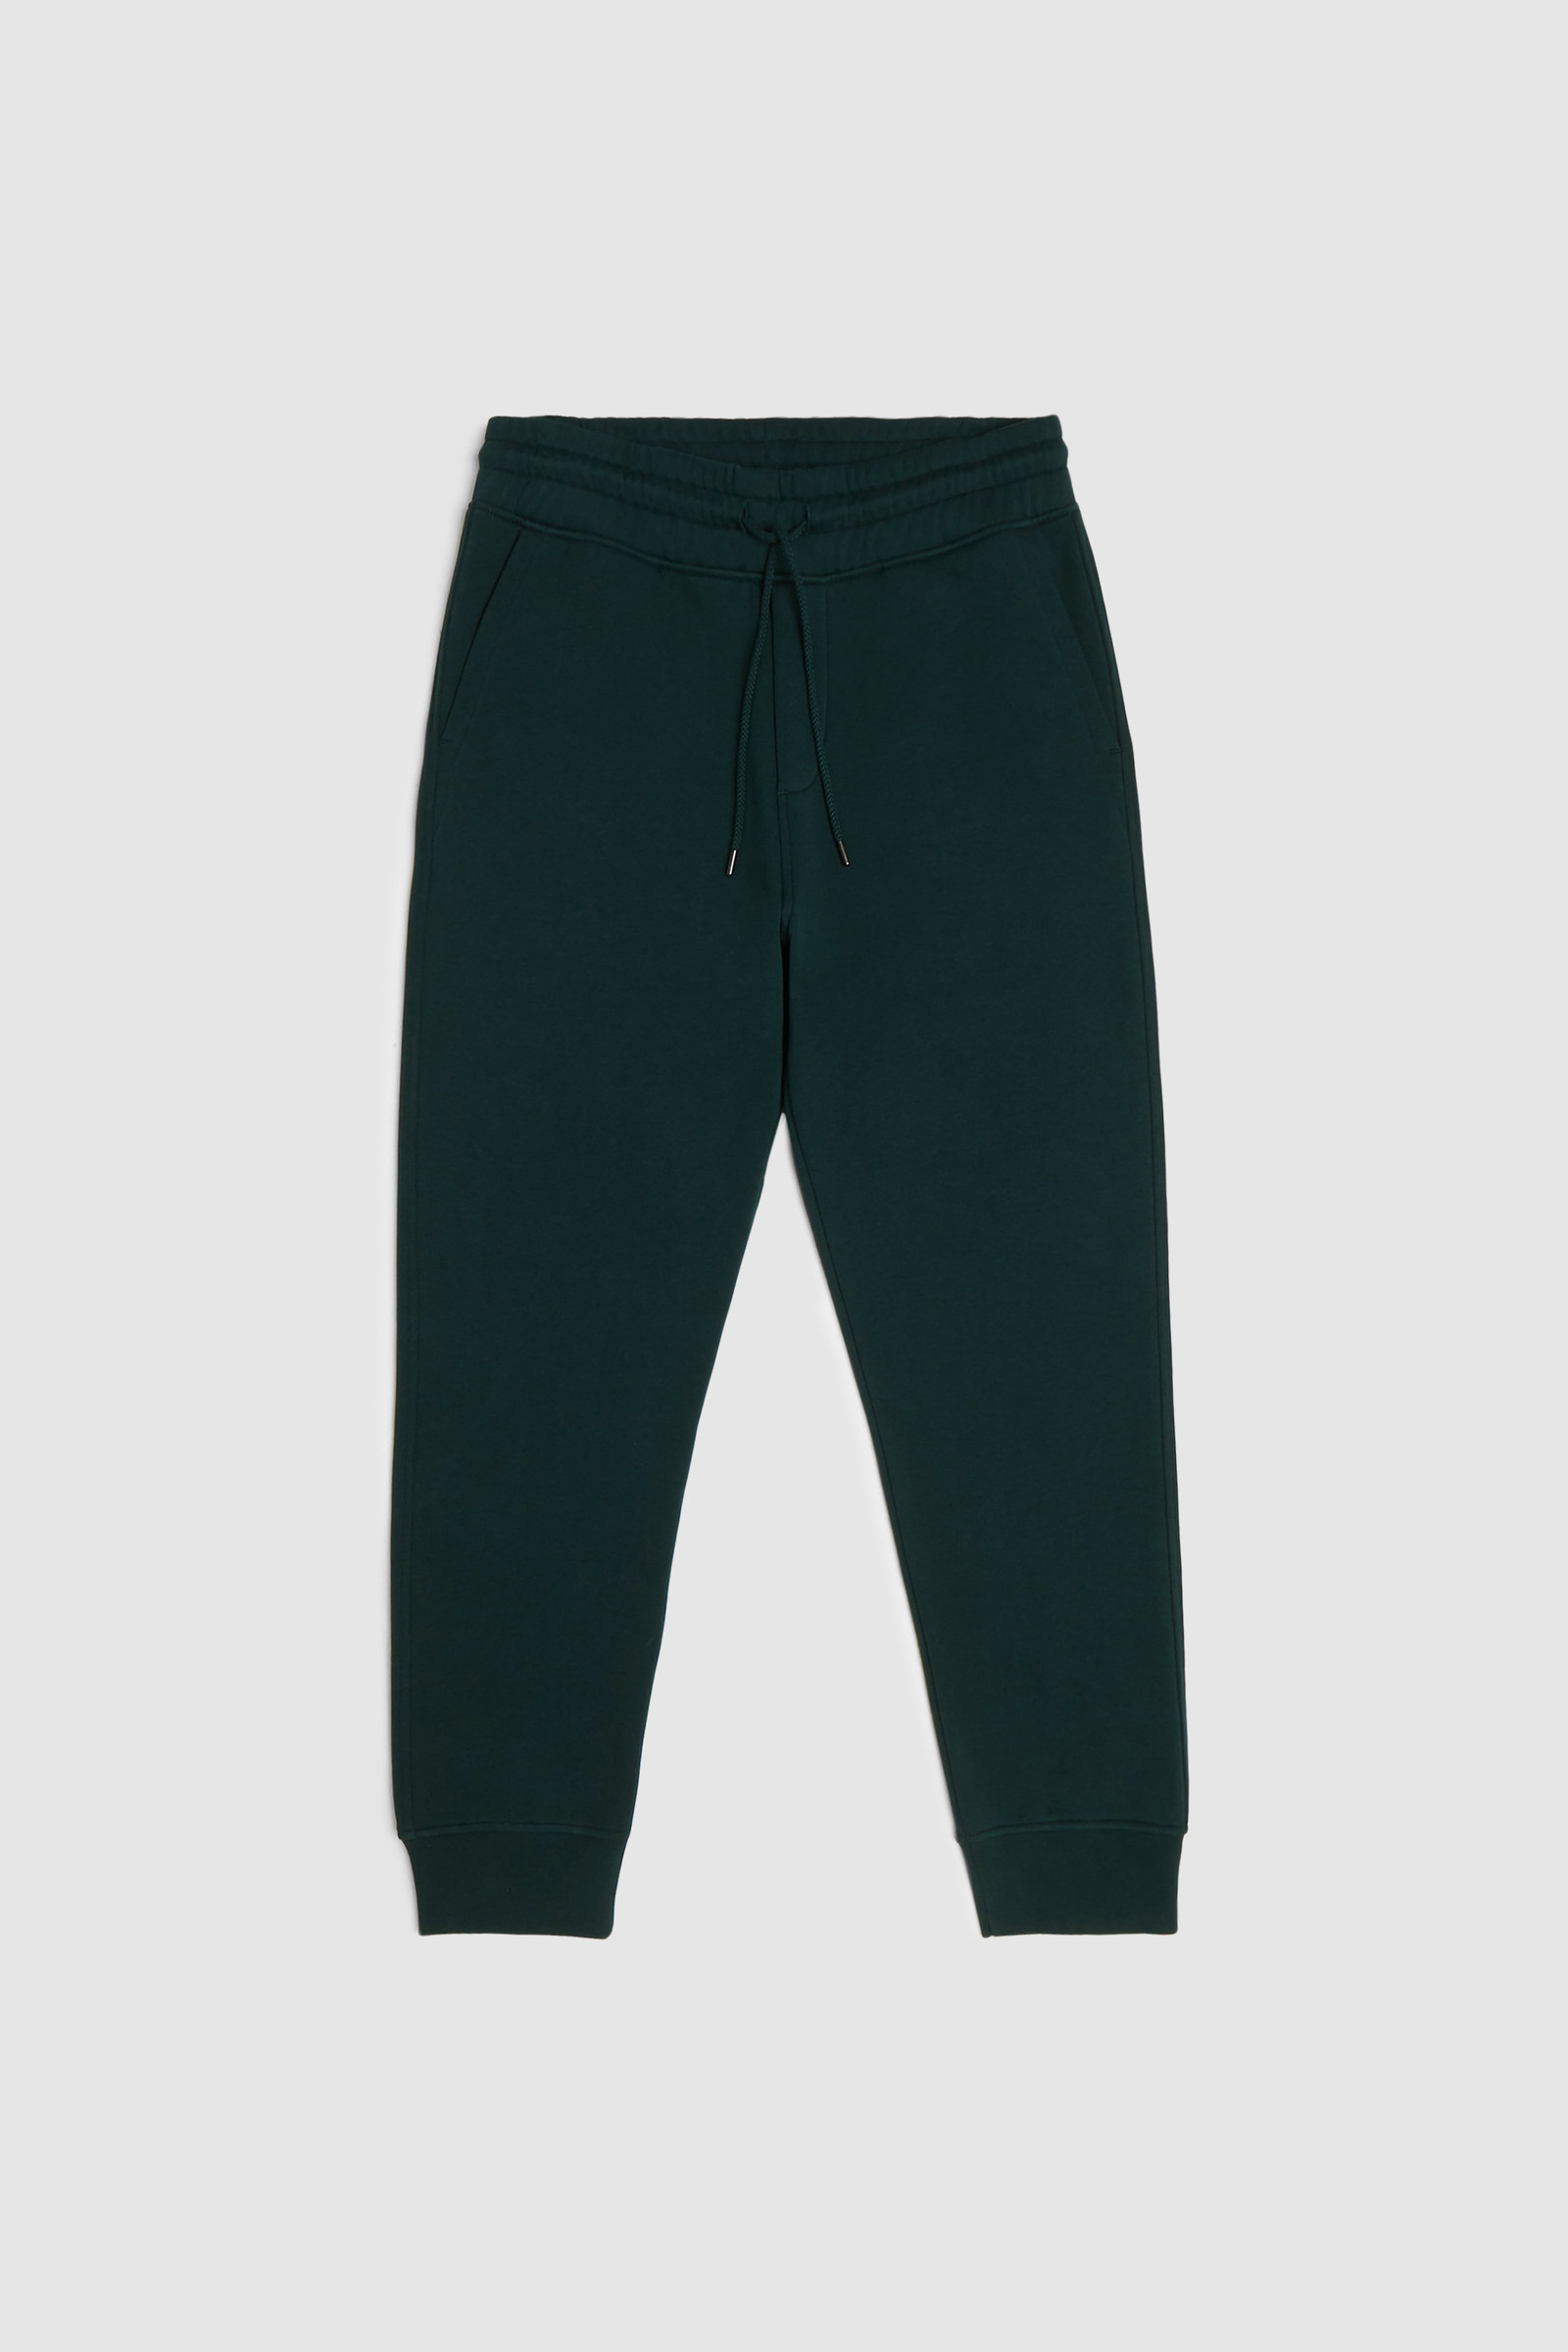 Luxury Pantaloni In Felpa